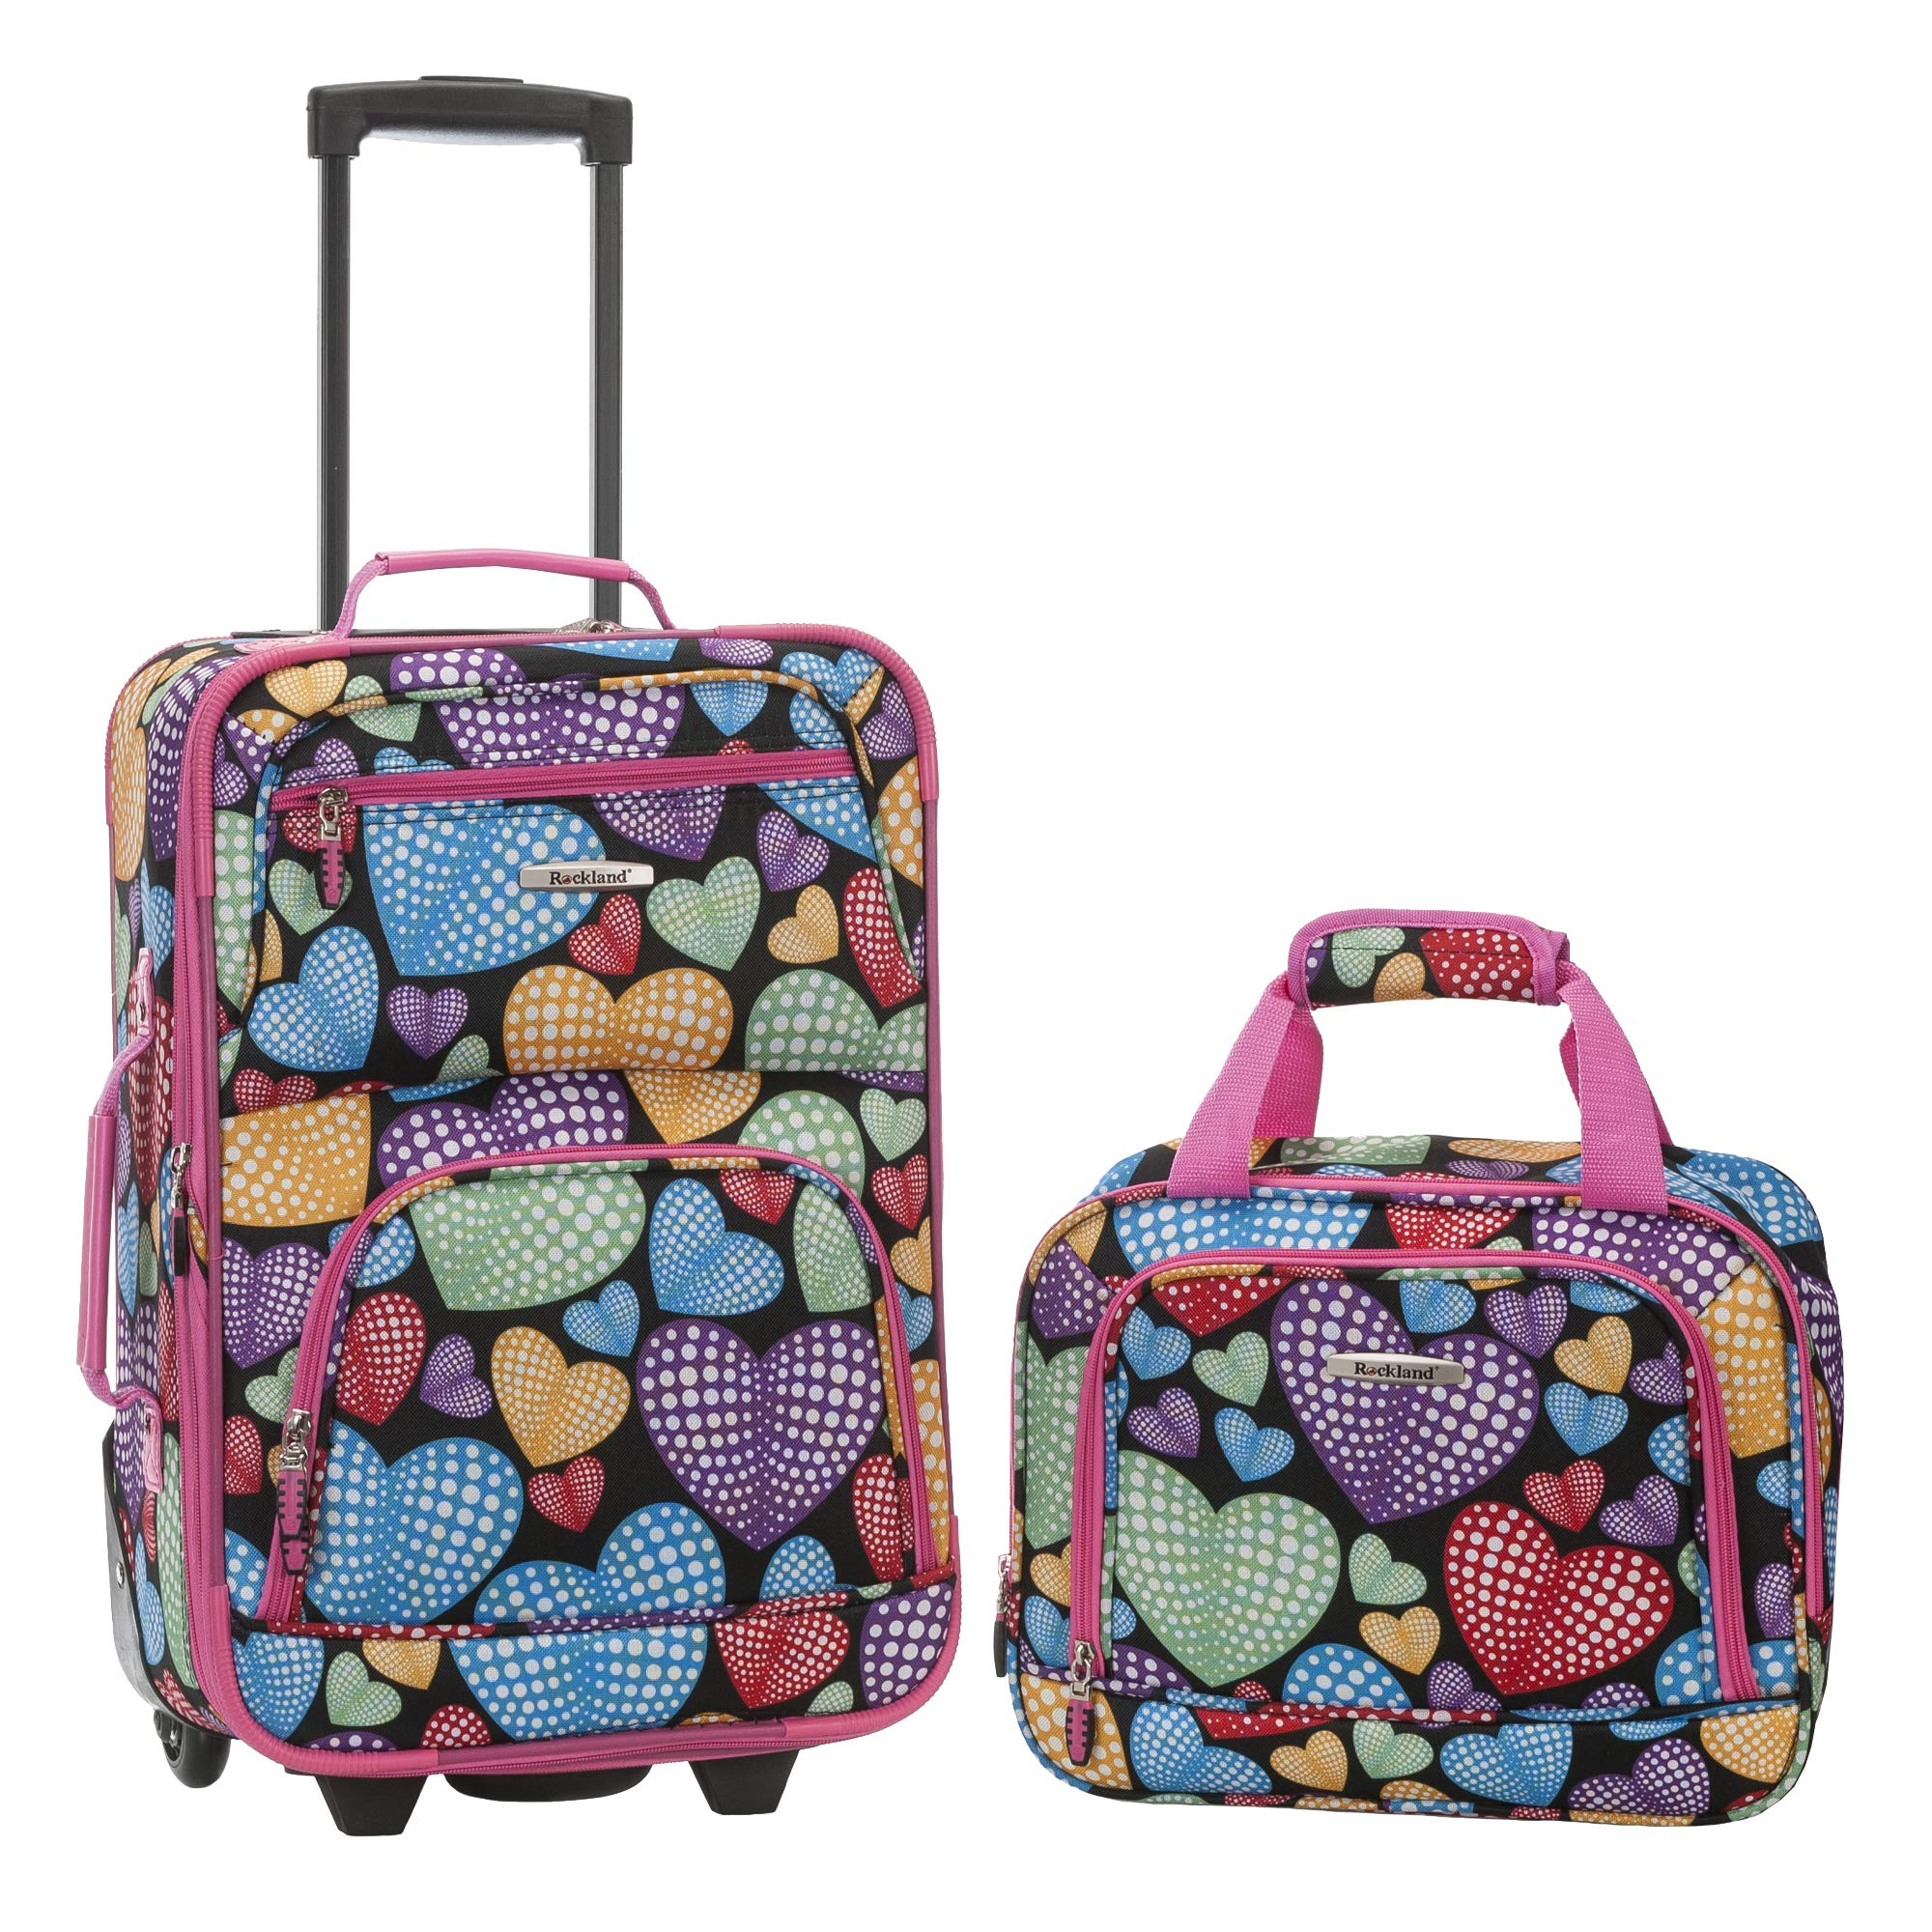 Rockland 2 Pc Luggage Set, Newheart by Rockland